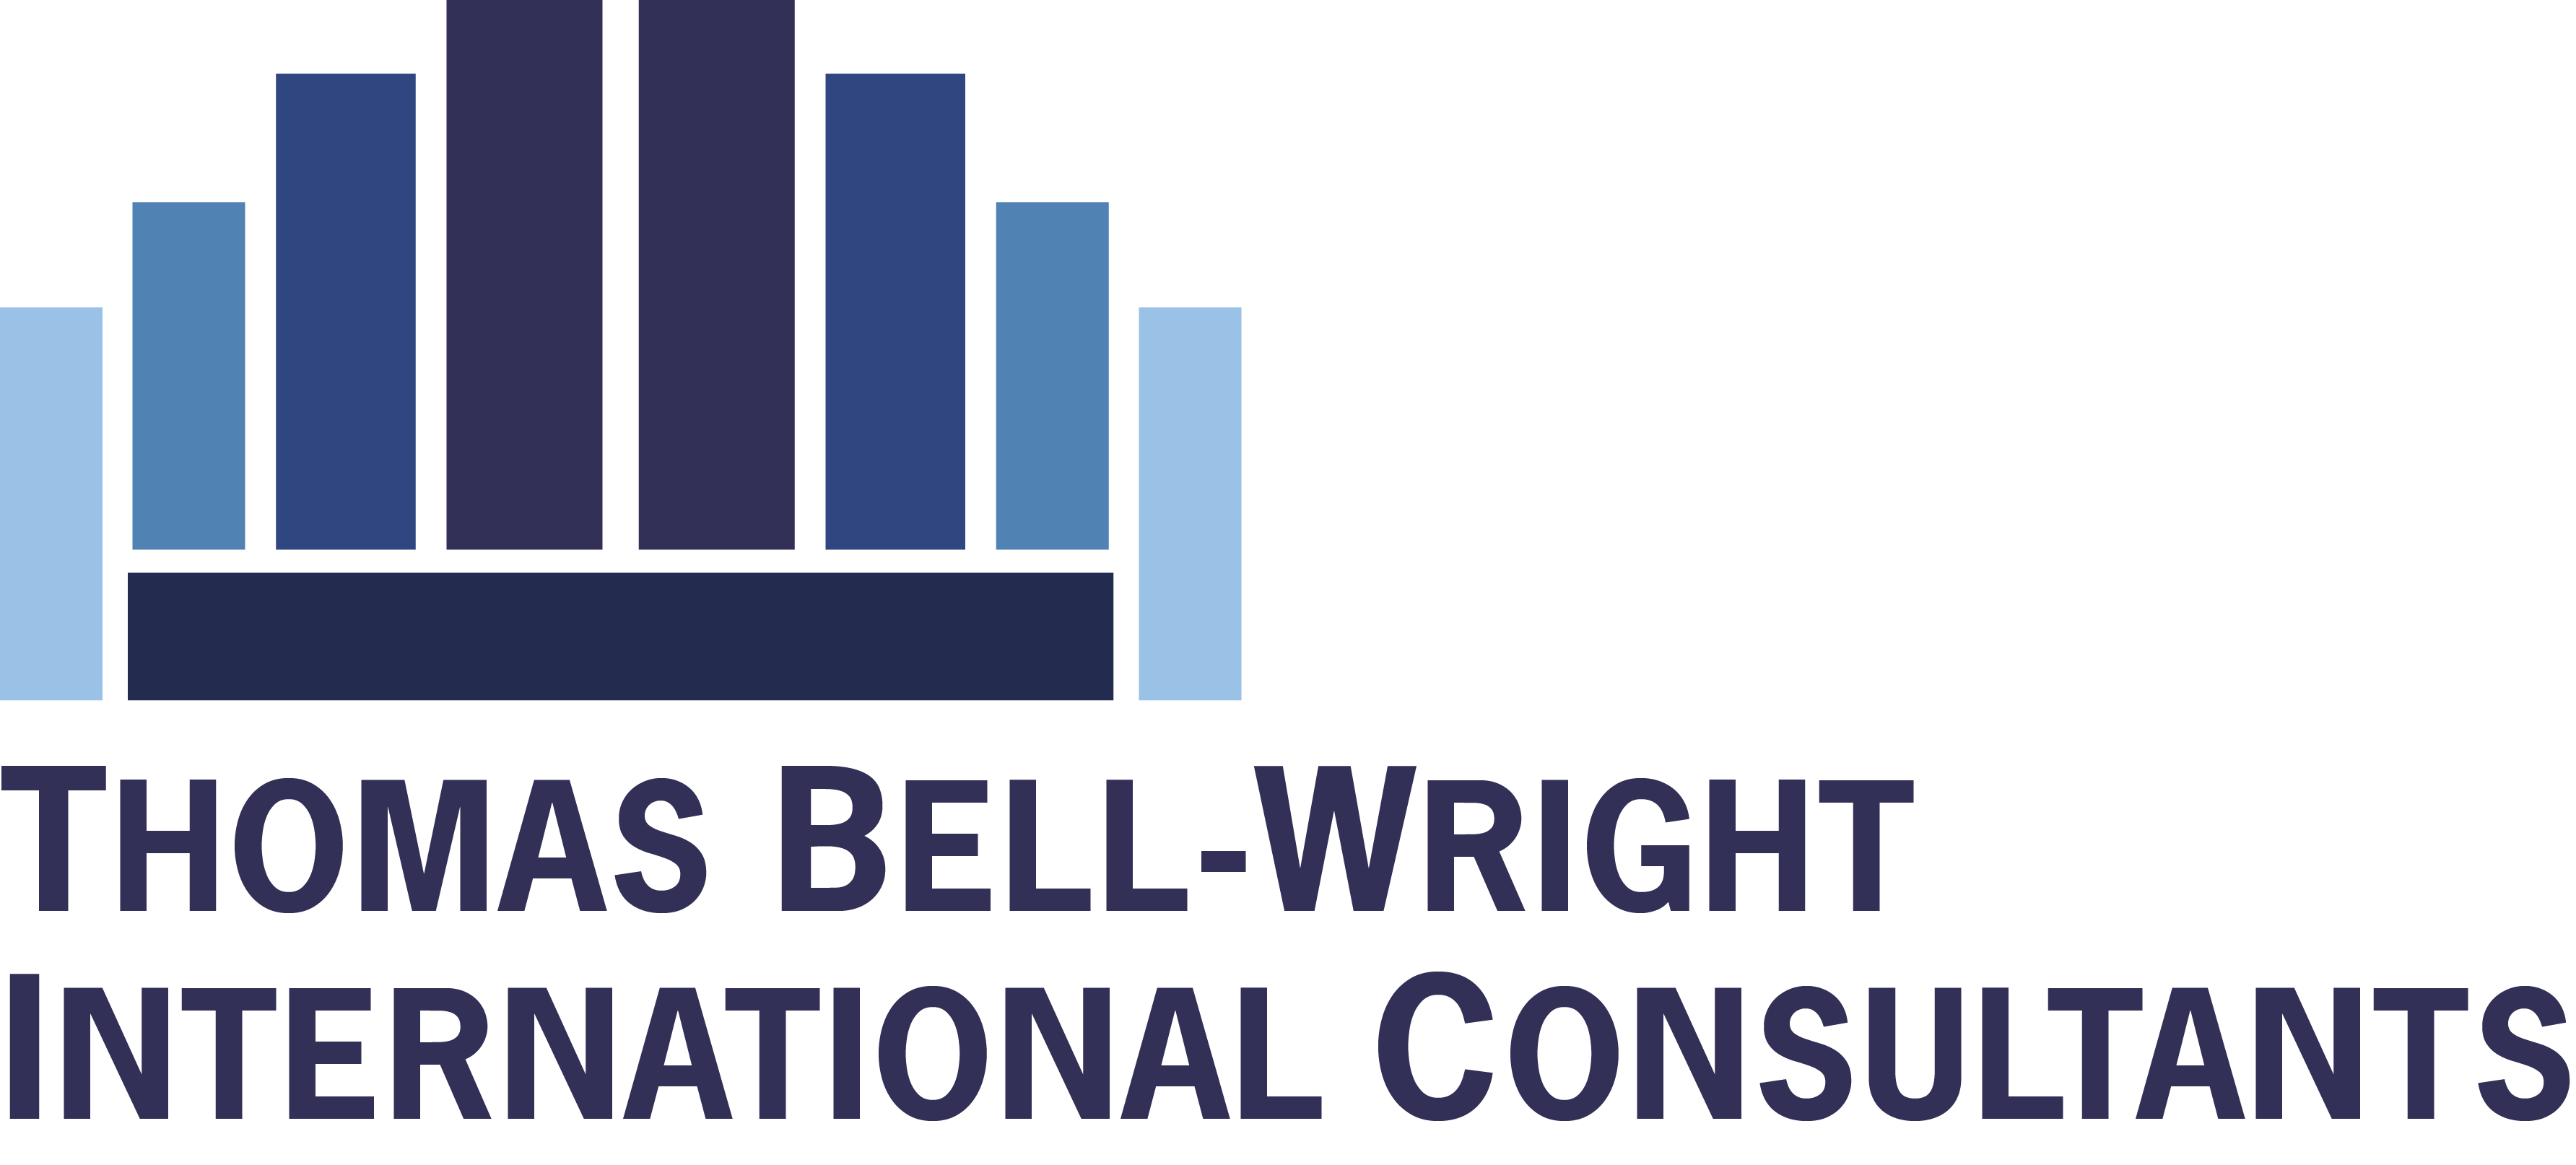 Thomas Bell Wright International Consultant  (TBWIC)